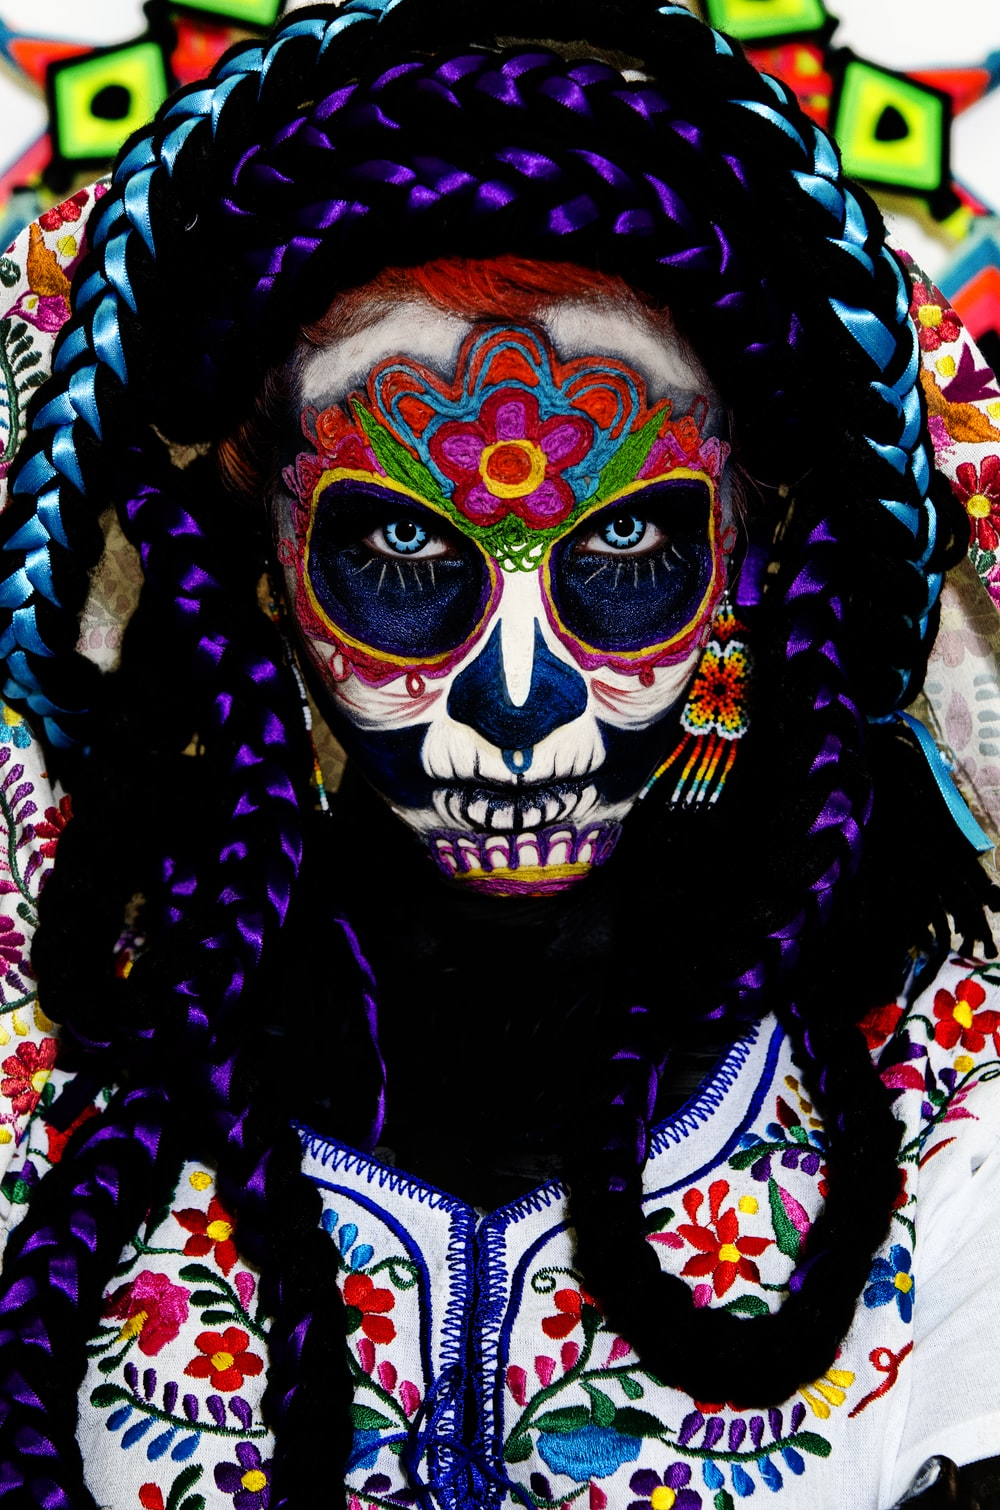 la muerte face paint wallpaper